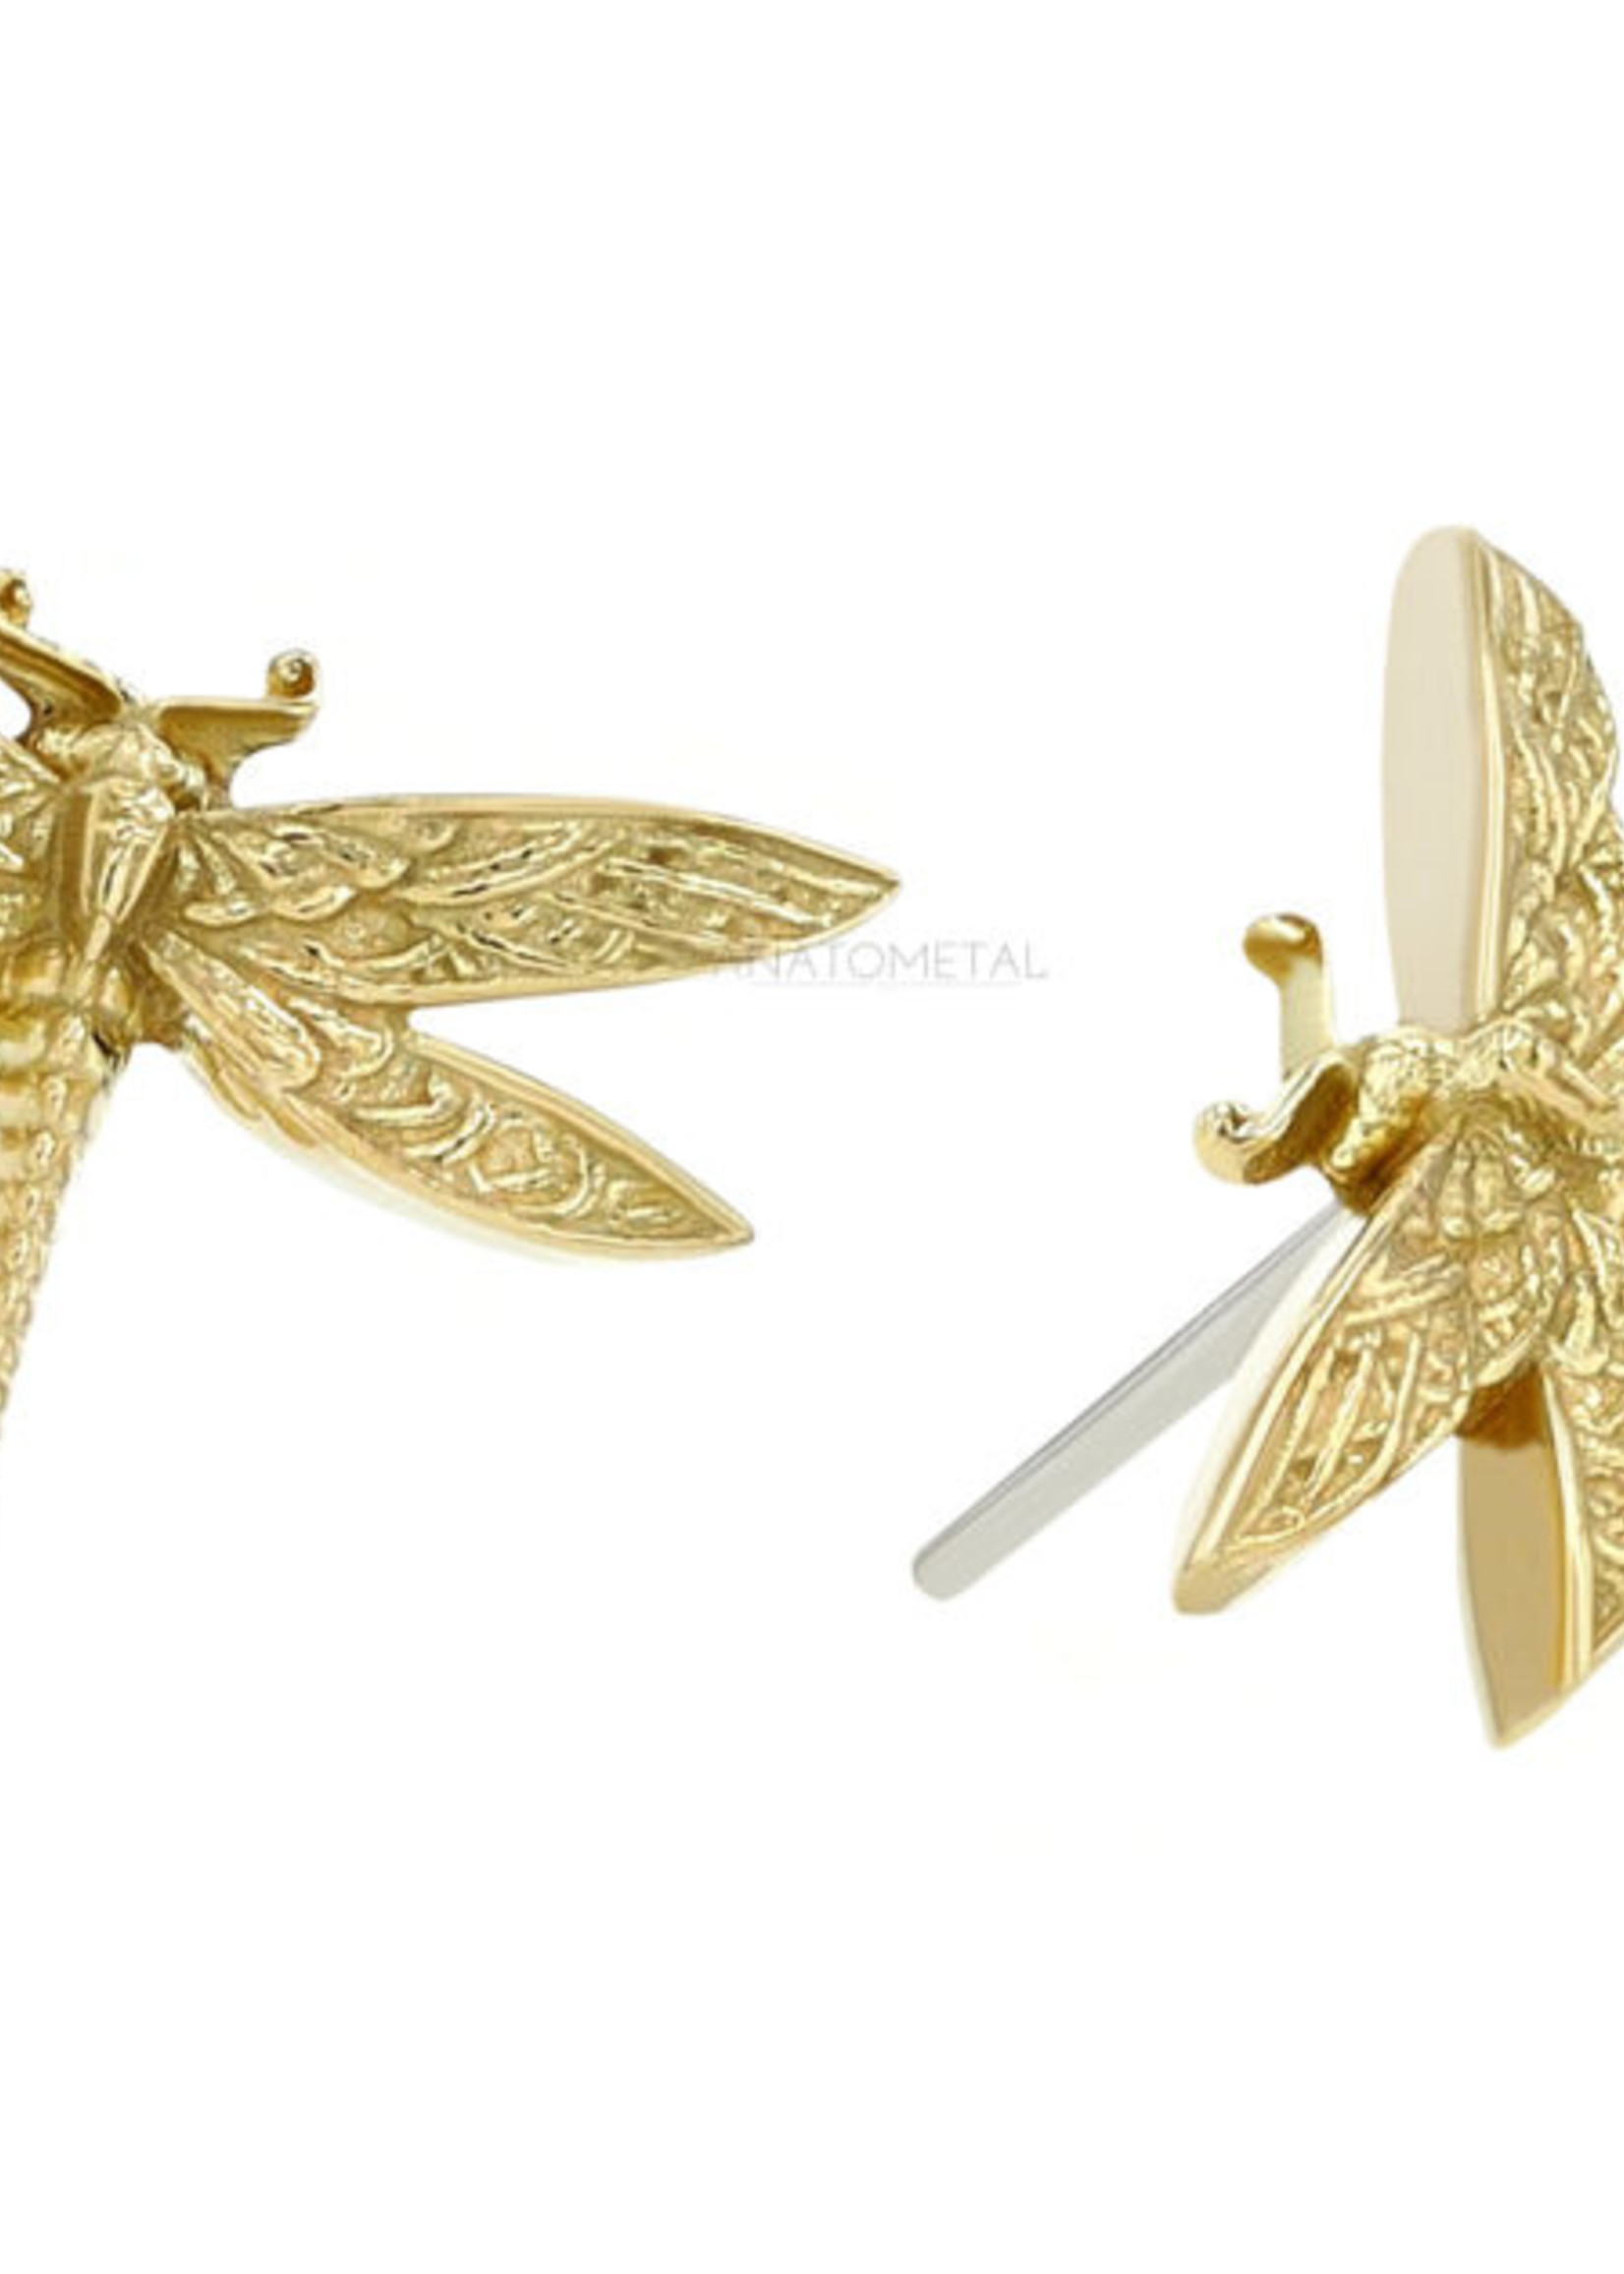 18k Dragonfly Pointed Tail Threadless End